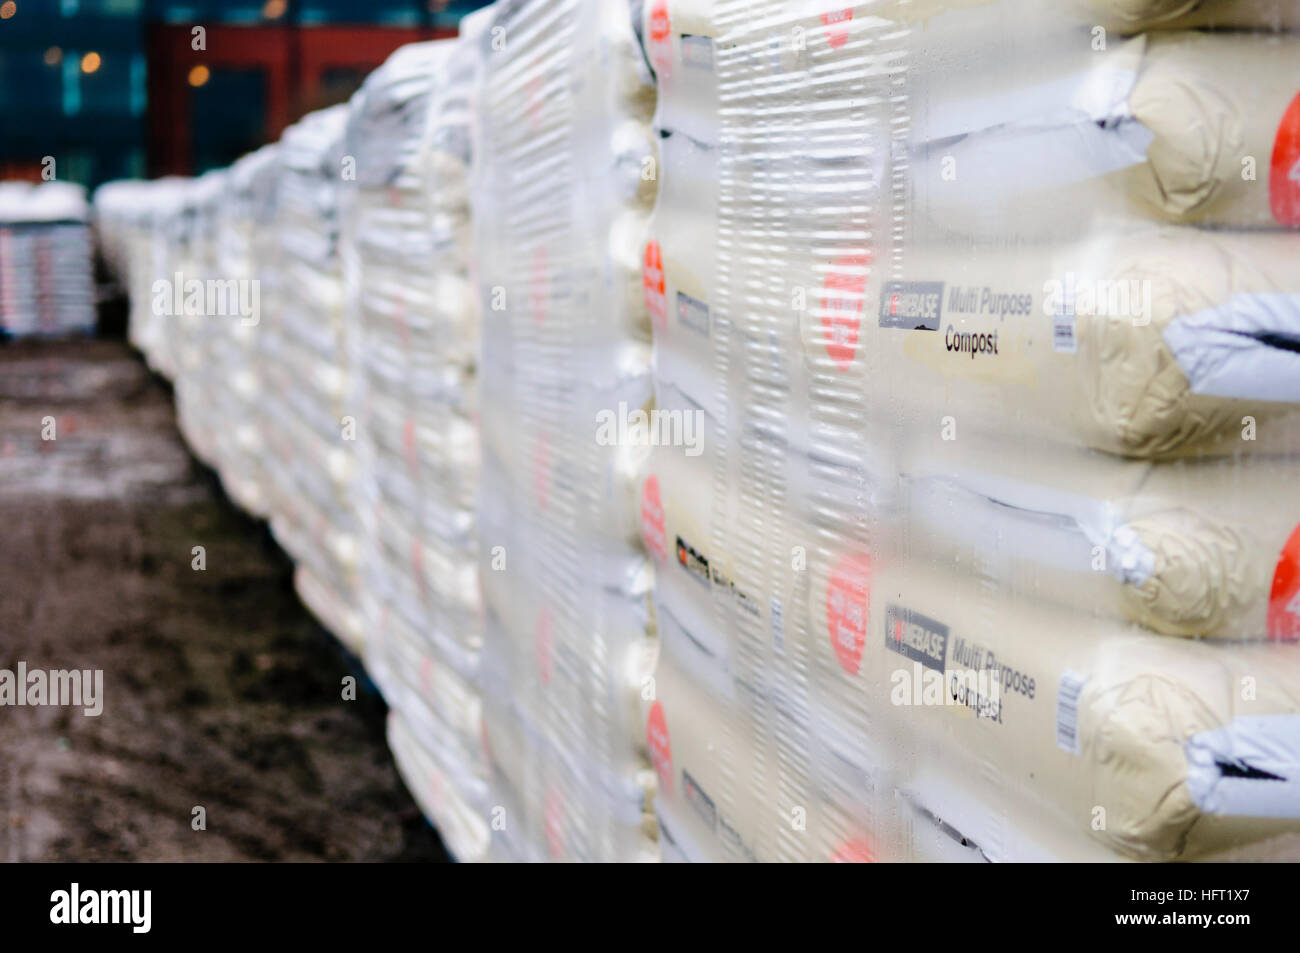 Wrapped pallets of multi-purpose compost at Homebase. - Stock Image